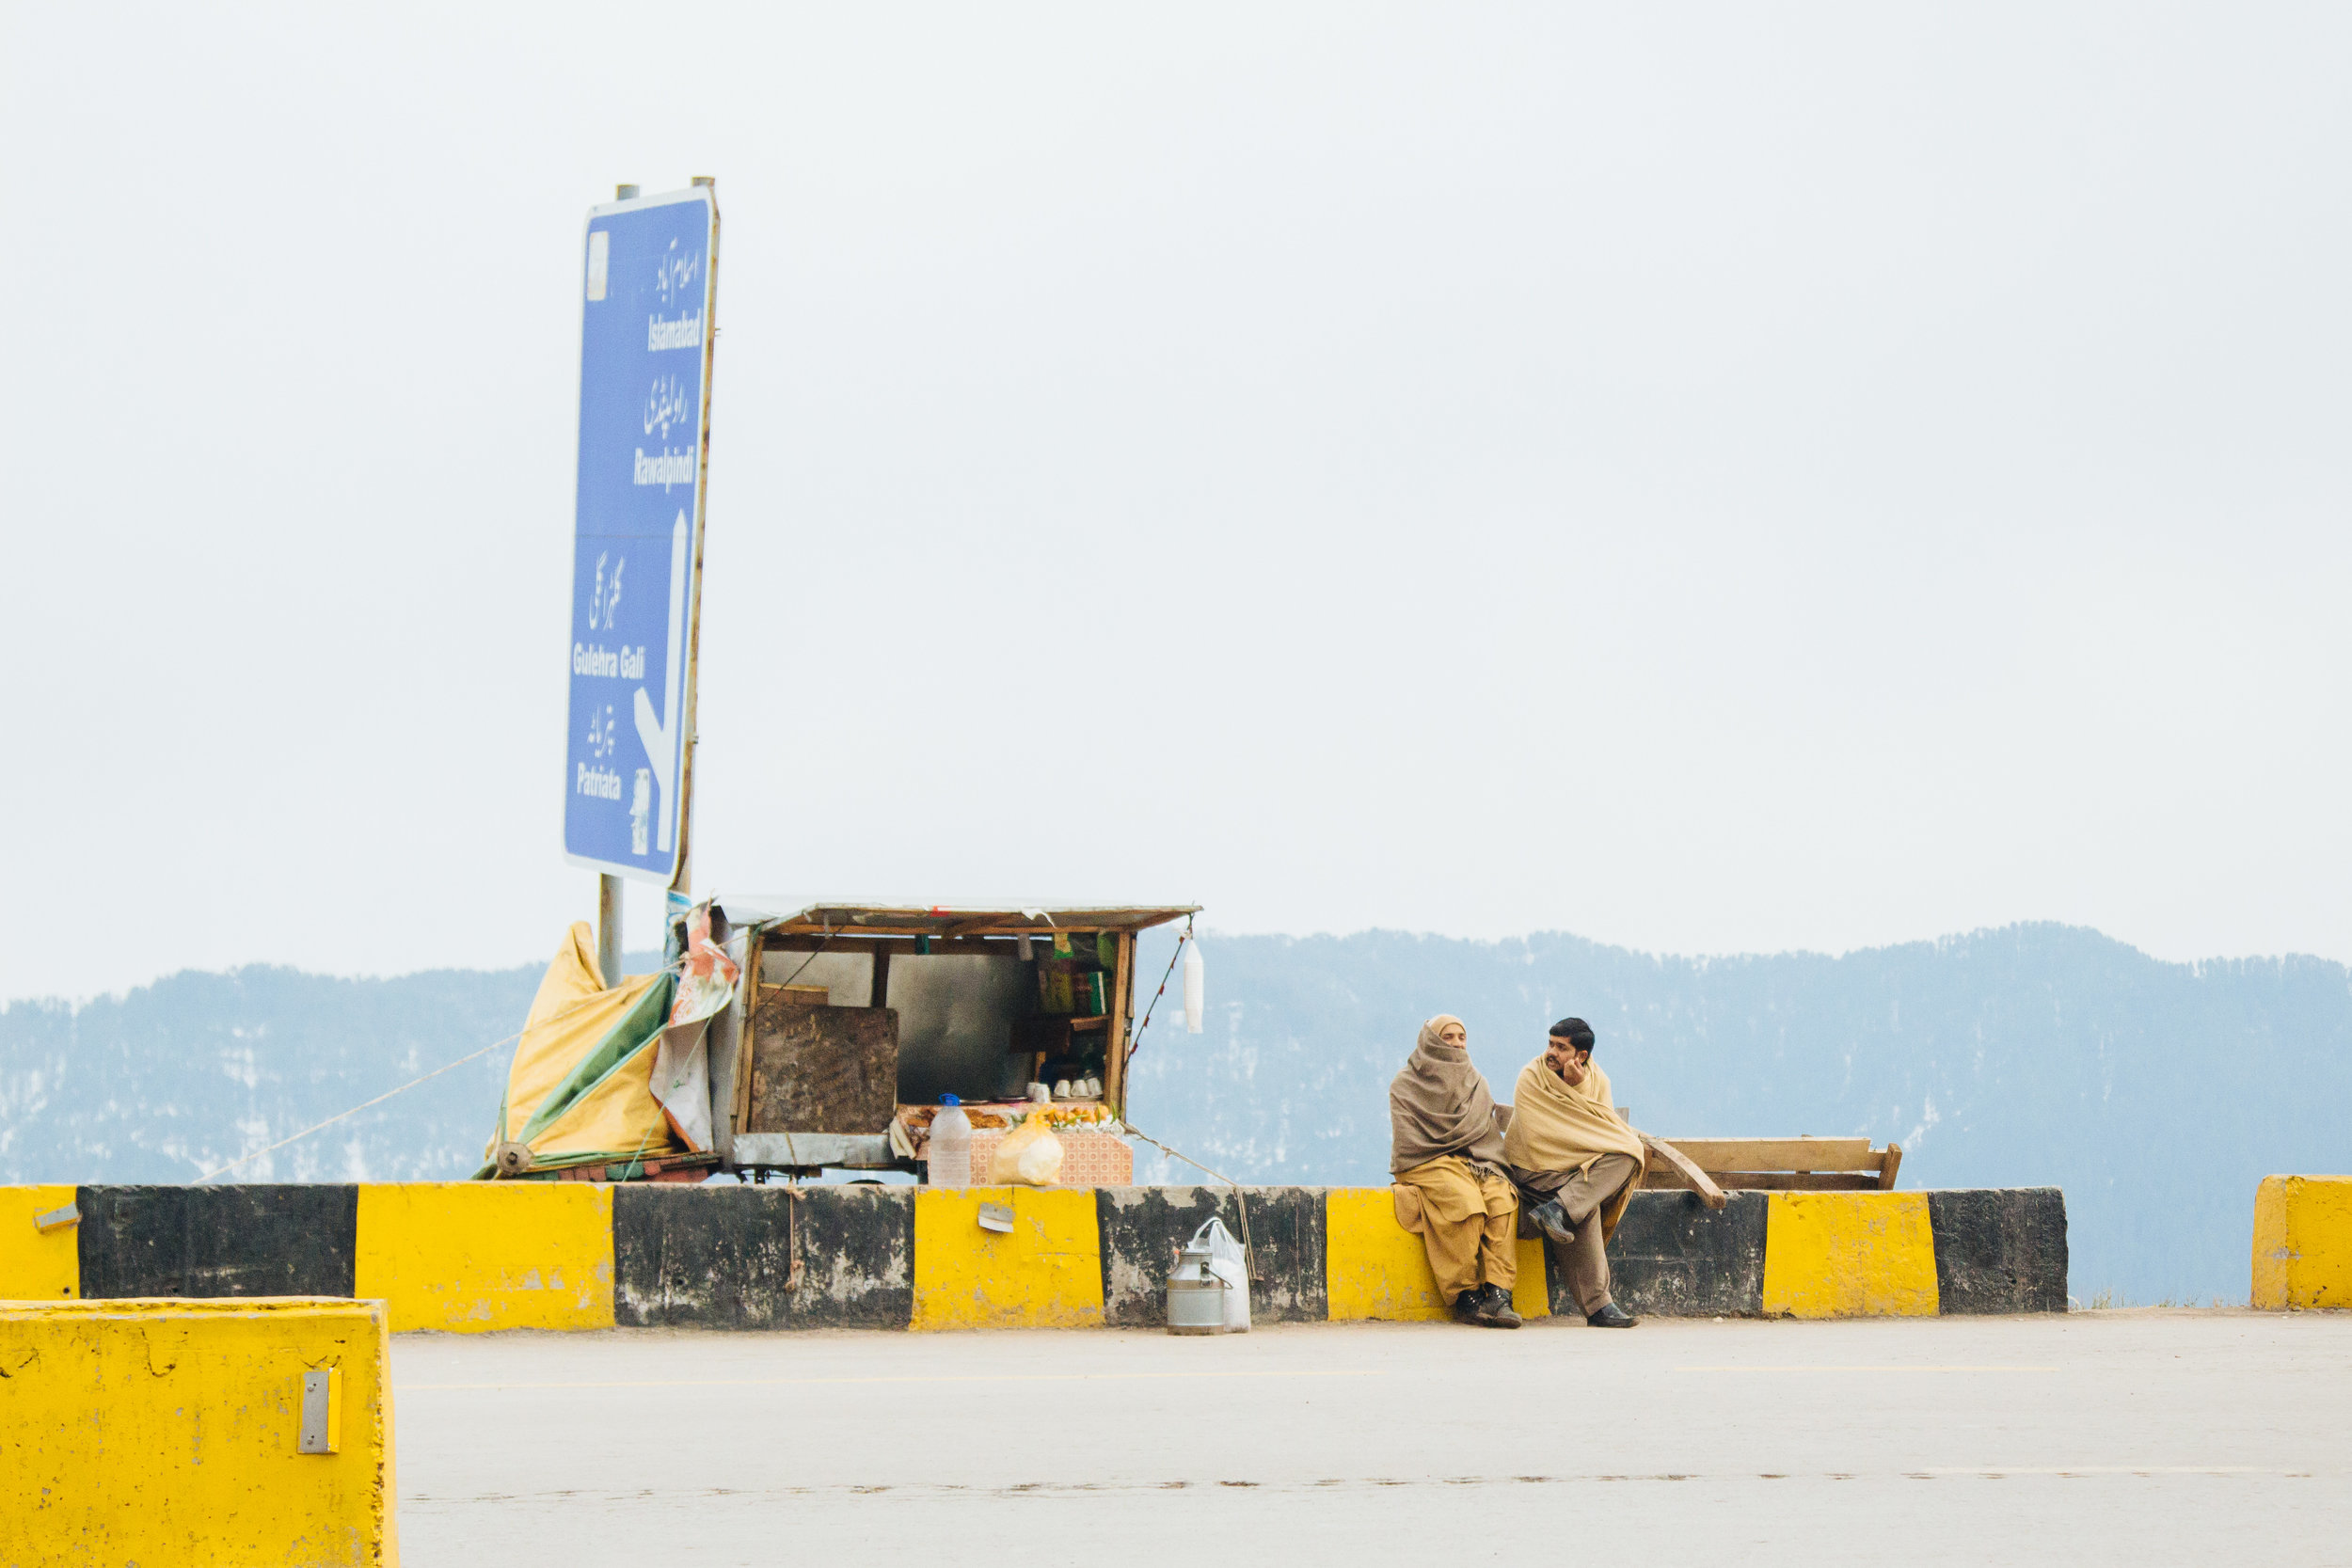 Vendors sell snacks to passing travellers